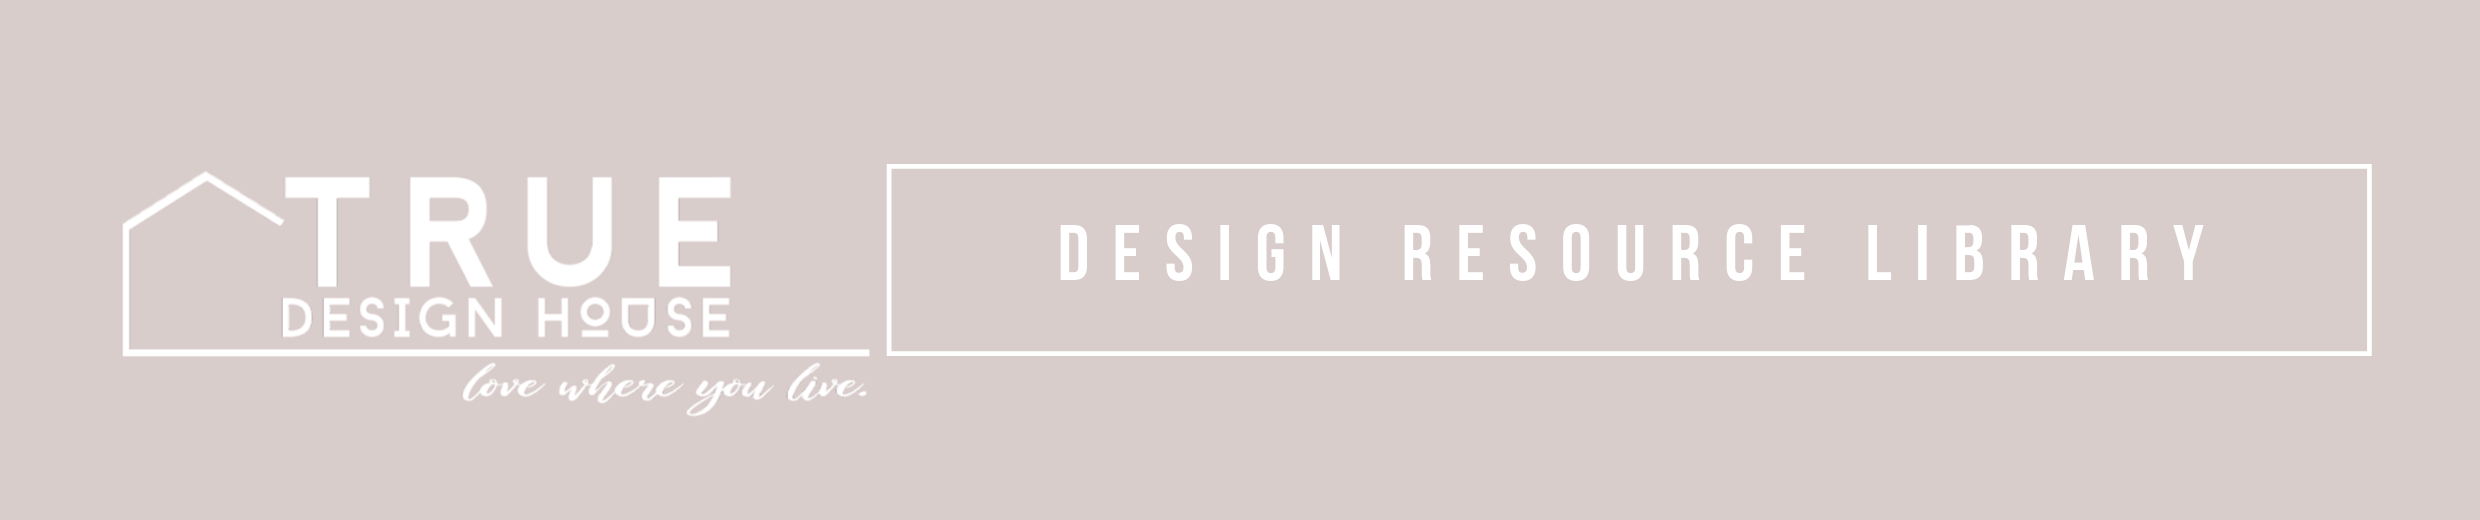 True Design House - resource library sign up.png